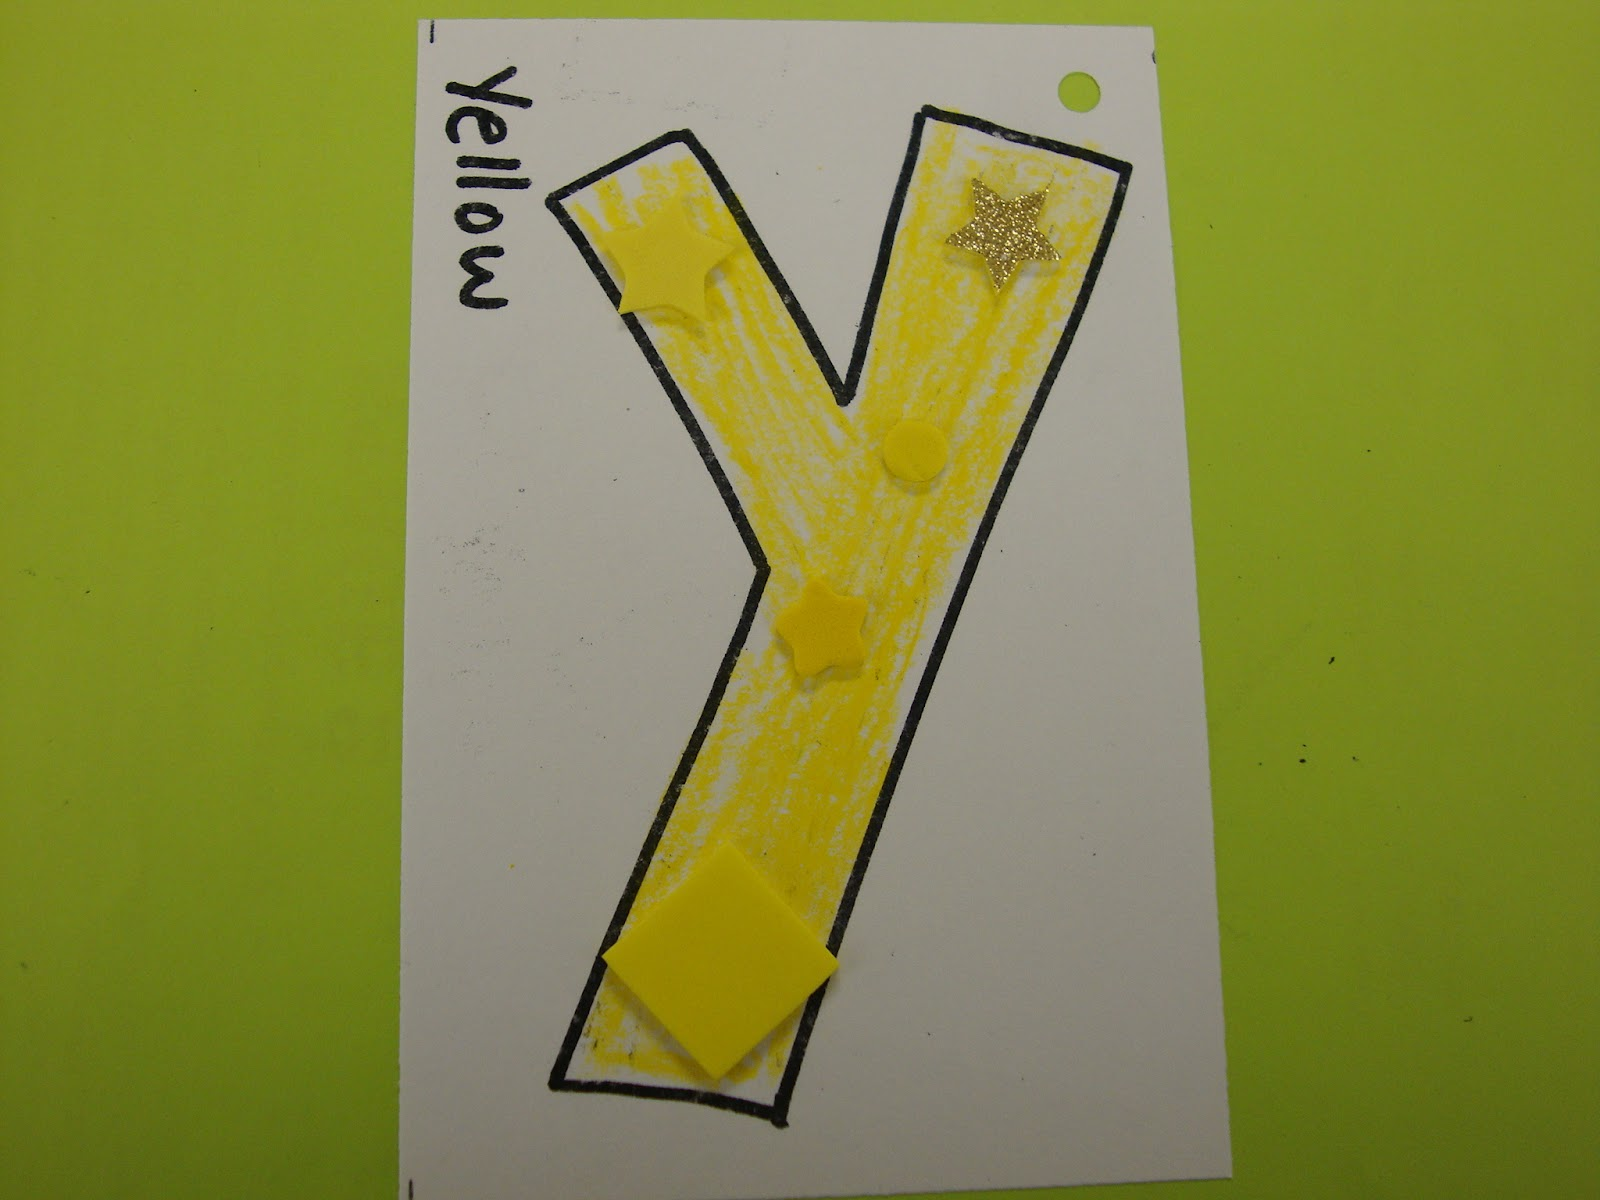 Letter y crafts - Preschool and Kindergarten